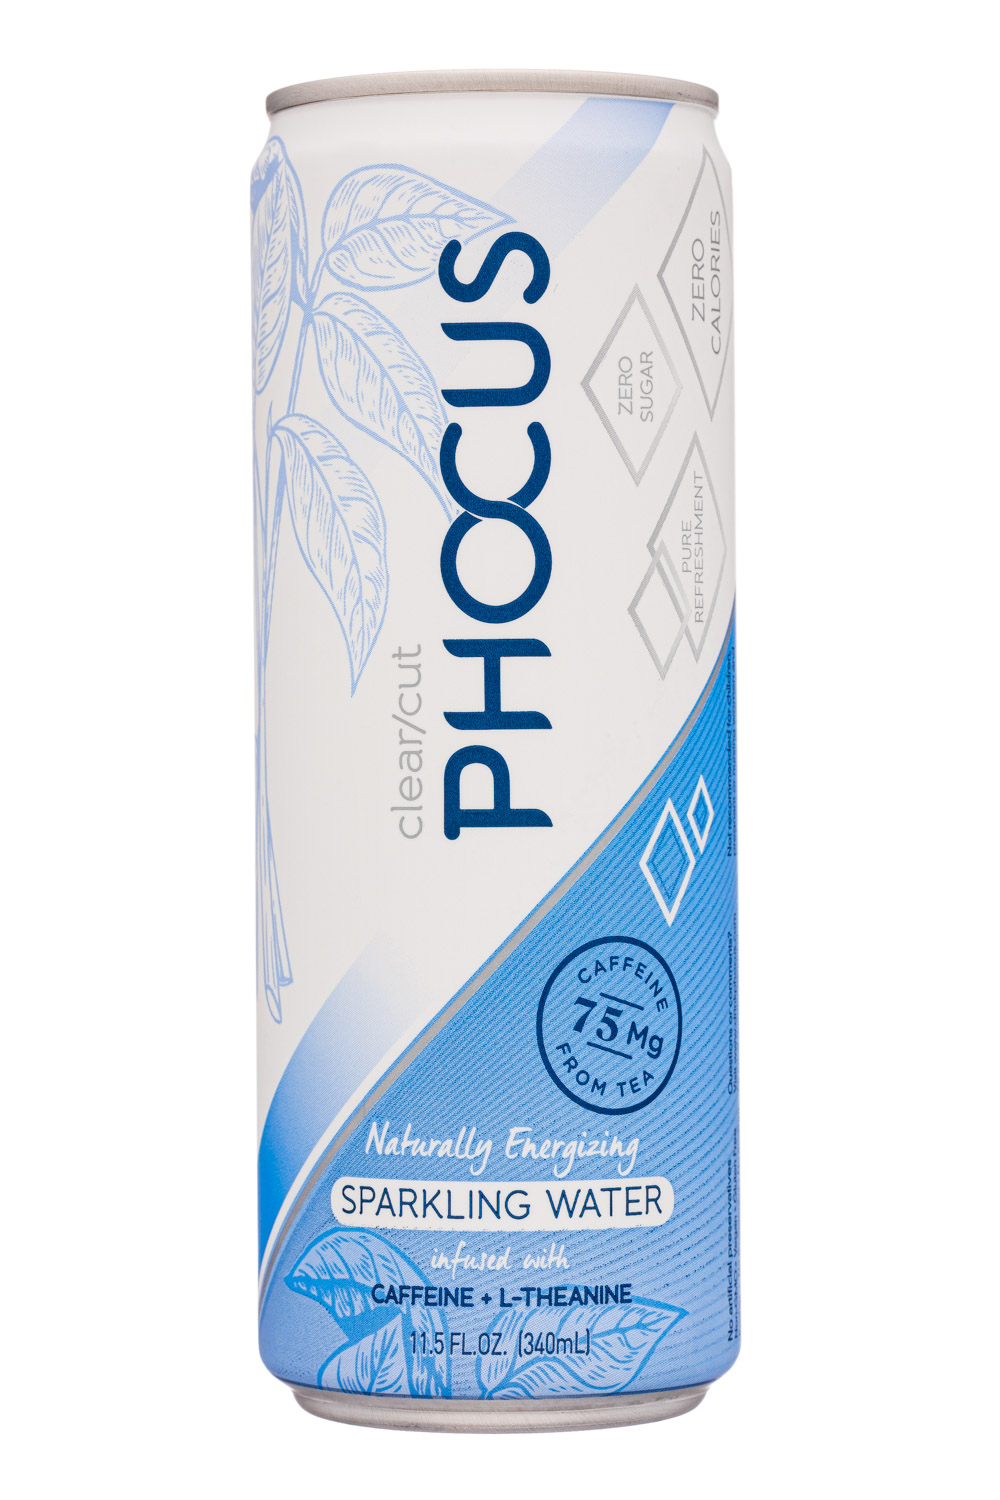 Naturally Energizing Sparkling Water 2020